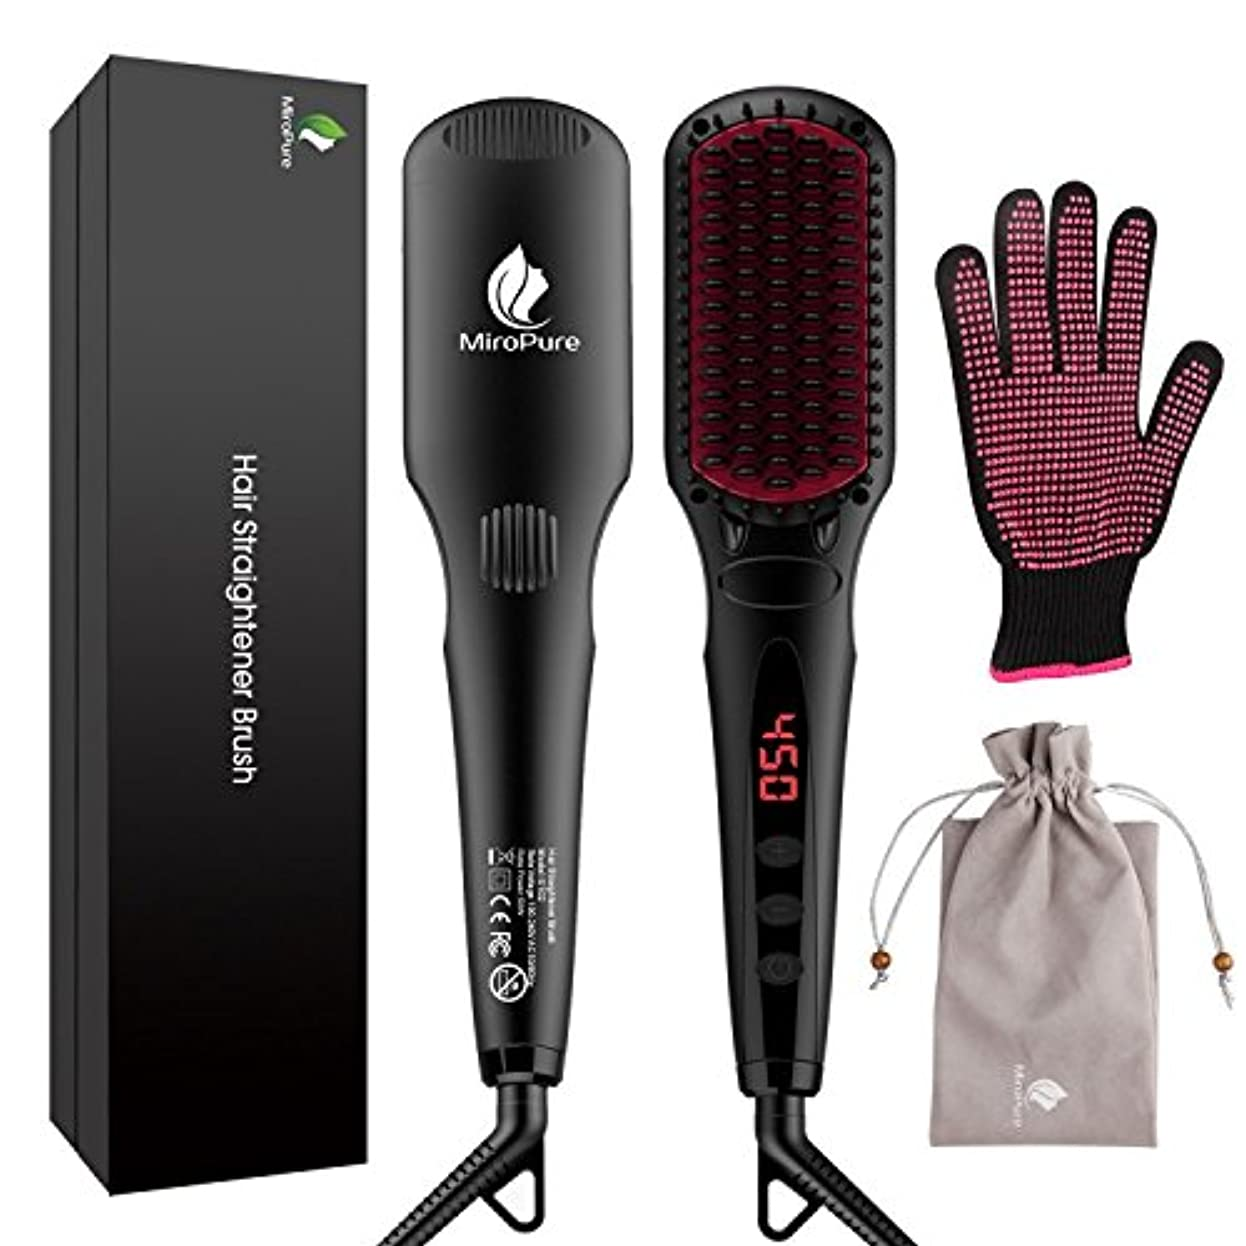 誠実さサイクルパステルMiroPure 2 in 1 Ionic Hair Straightener Brush ヘアストレートヘアブラシ with Heat Resistant Glove and Temperature Lock Function...